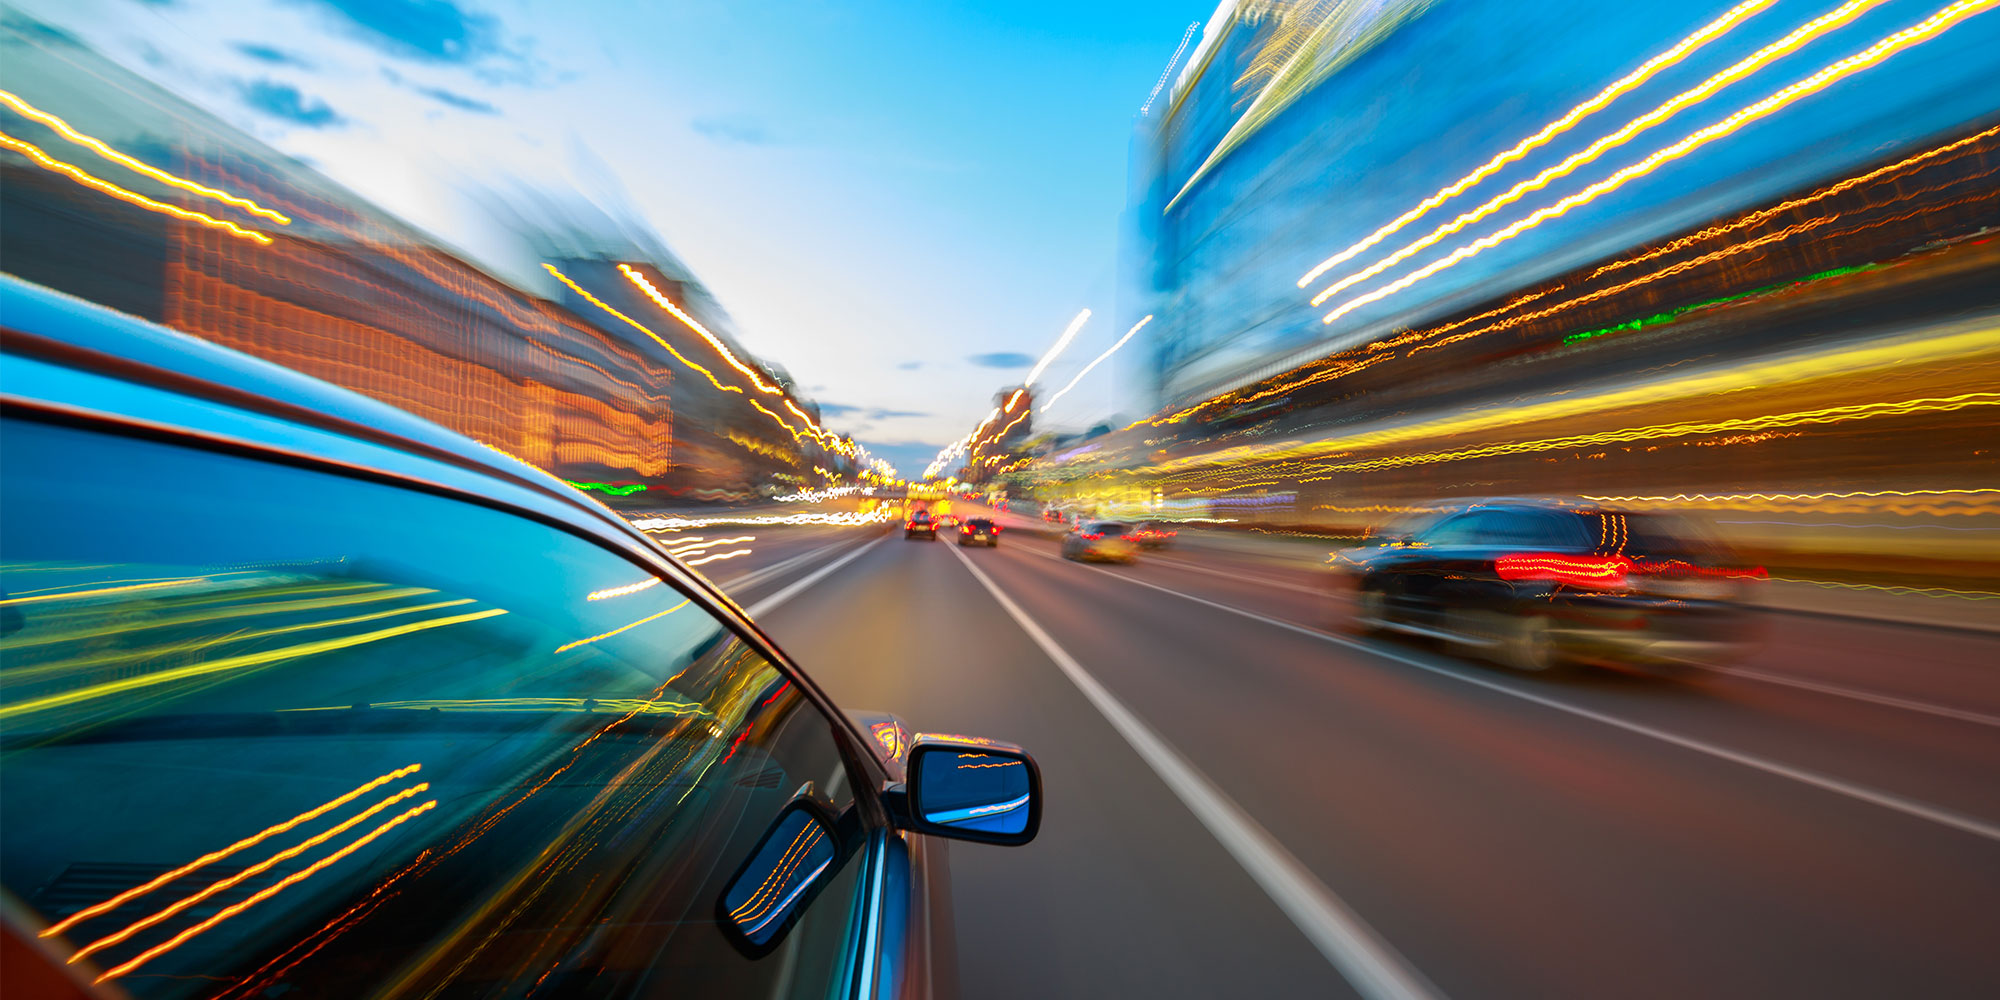 Speeding and Aggressive Driving Cause Accidents